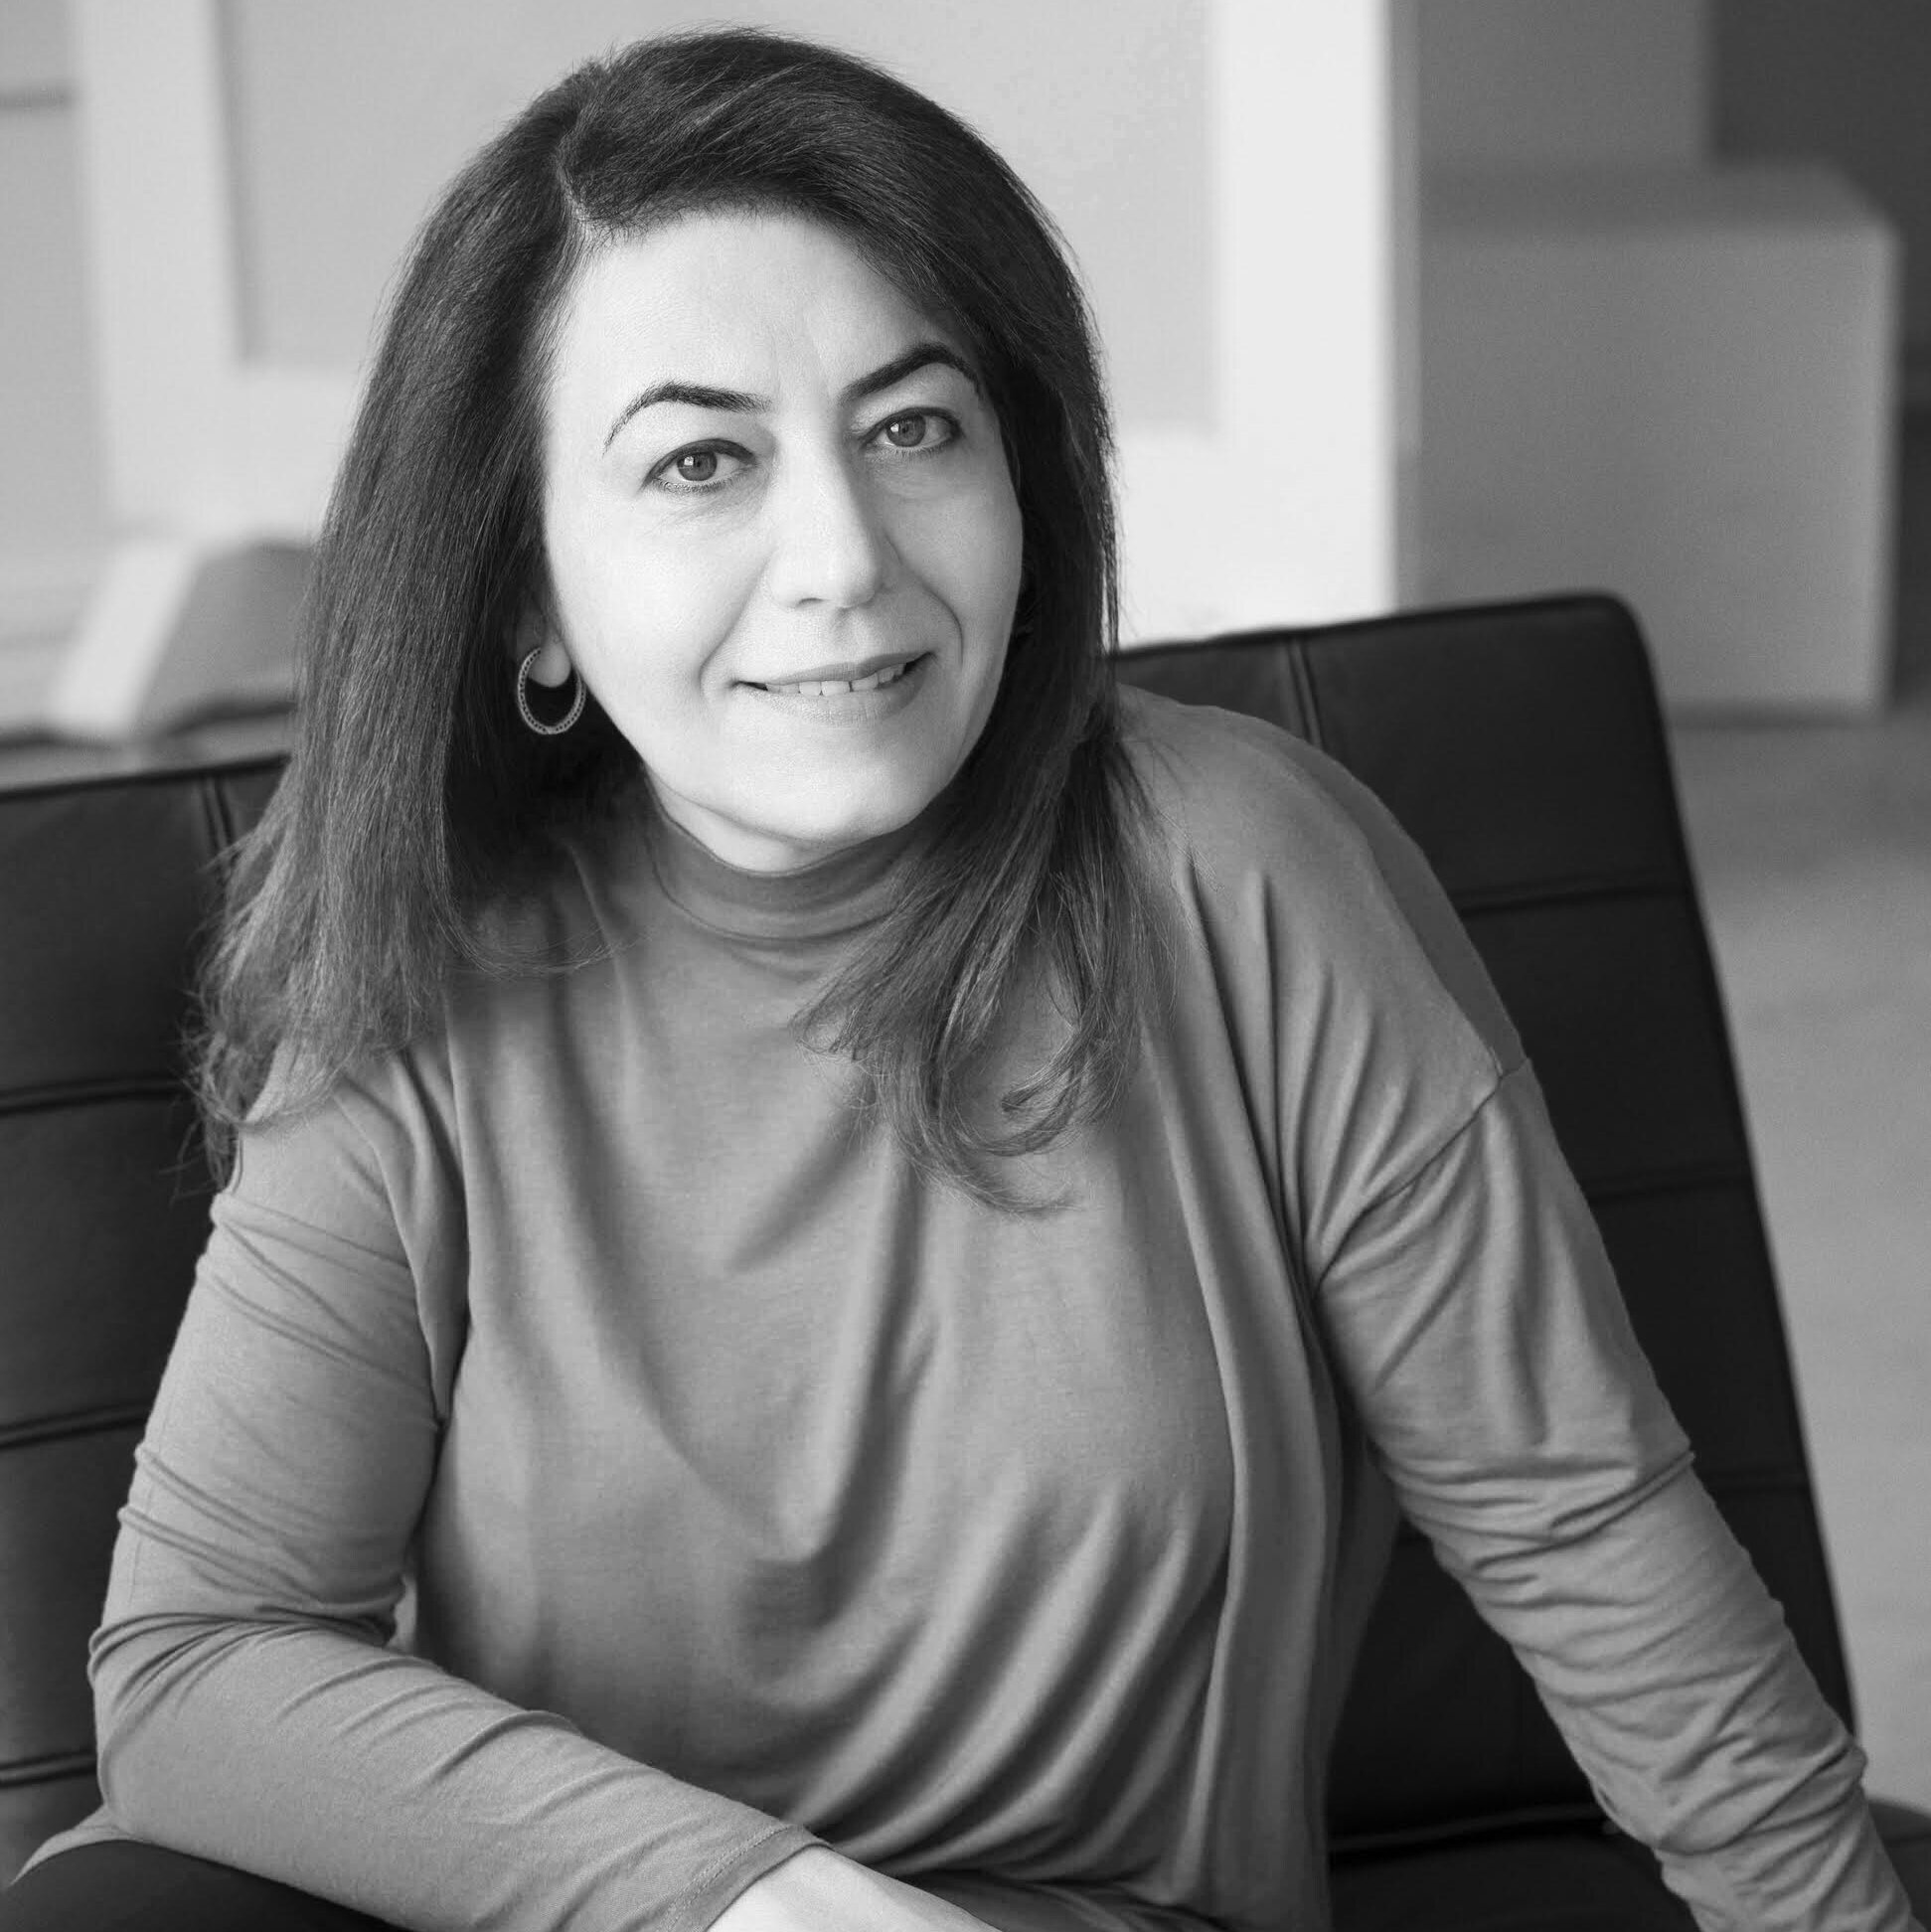 """Dunya Mikhail - was born in Iraq (Baghdad) in 1965 and came to the United States thirty years later. She's renowned in the Arab world for her subversive, innovative, and satirical poetry. After graduation from the University of Baghdad, she worked as a journalist and translator for the Baghdad Observer. Facing censorship and interrogation, she left Iraq, first to Jordan and then to America (Detroit). New Directions published her books in English: The War Works Hard (translated by Elizabeth Winslow), shortlisted for Griffin and named one of """"Twenty-Five Books to Remember from 2005"""" by the New York Public Library. Diary of A Wave Outside the Sea (co-translated with Elisabeth Winslow) won the Arab American Book Award. The Iraqi Nights (translated by Kareem James Abu-Zeid) and 15 Iraqi Poets (editor). The Beekeeper: Rescuing the Stolen Women of Iraq (co-translated with Max Weiss), finalist for PEN/John Kenneth Galbraith award in non-fiction and long-listed for the National Book Award, selected by The New York Times as one of 8 recommended books of the week, and by The Christian Science Monitor as one of top 10 of the month, and by Publisher Weekly as one of top 10 of spring season. In Her Feminine Sign released in July, 2019. In an NPR interview, Mikhail's honors include the Guggenheim Fellowship, the Knights Foundation grant, the Kresge Fellowship, and the United Nations Human Rights Award for Freedom of Writing. She is the co-founder of Michigan-community-based Mesopotamian Forum for Art and Culture. She currently works as a special lecturer of Arabic at Oakland University in Michigan."""